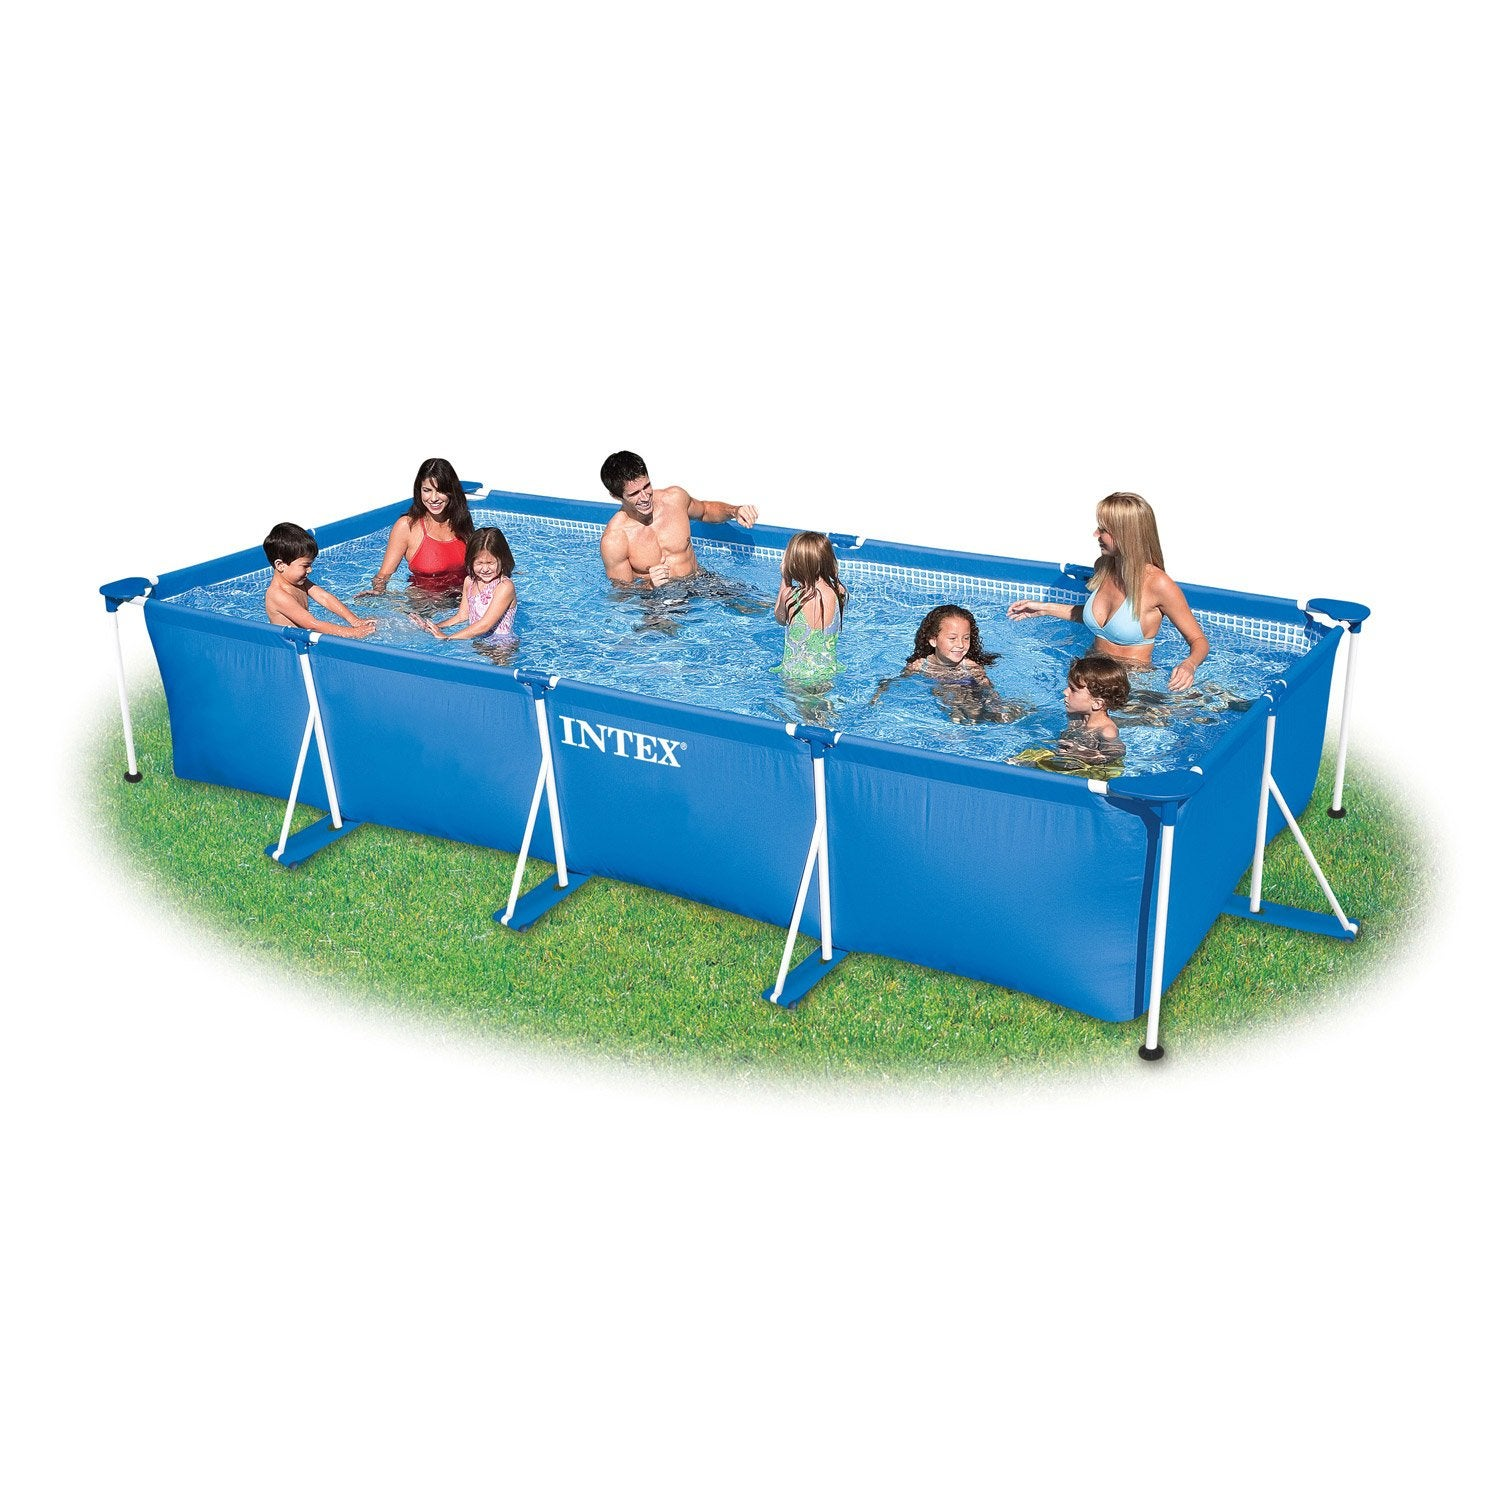 Jardin brico leclerc piscine for Leclerc piscine intex